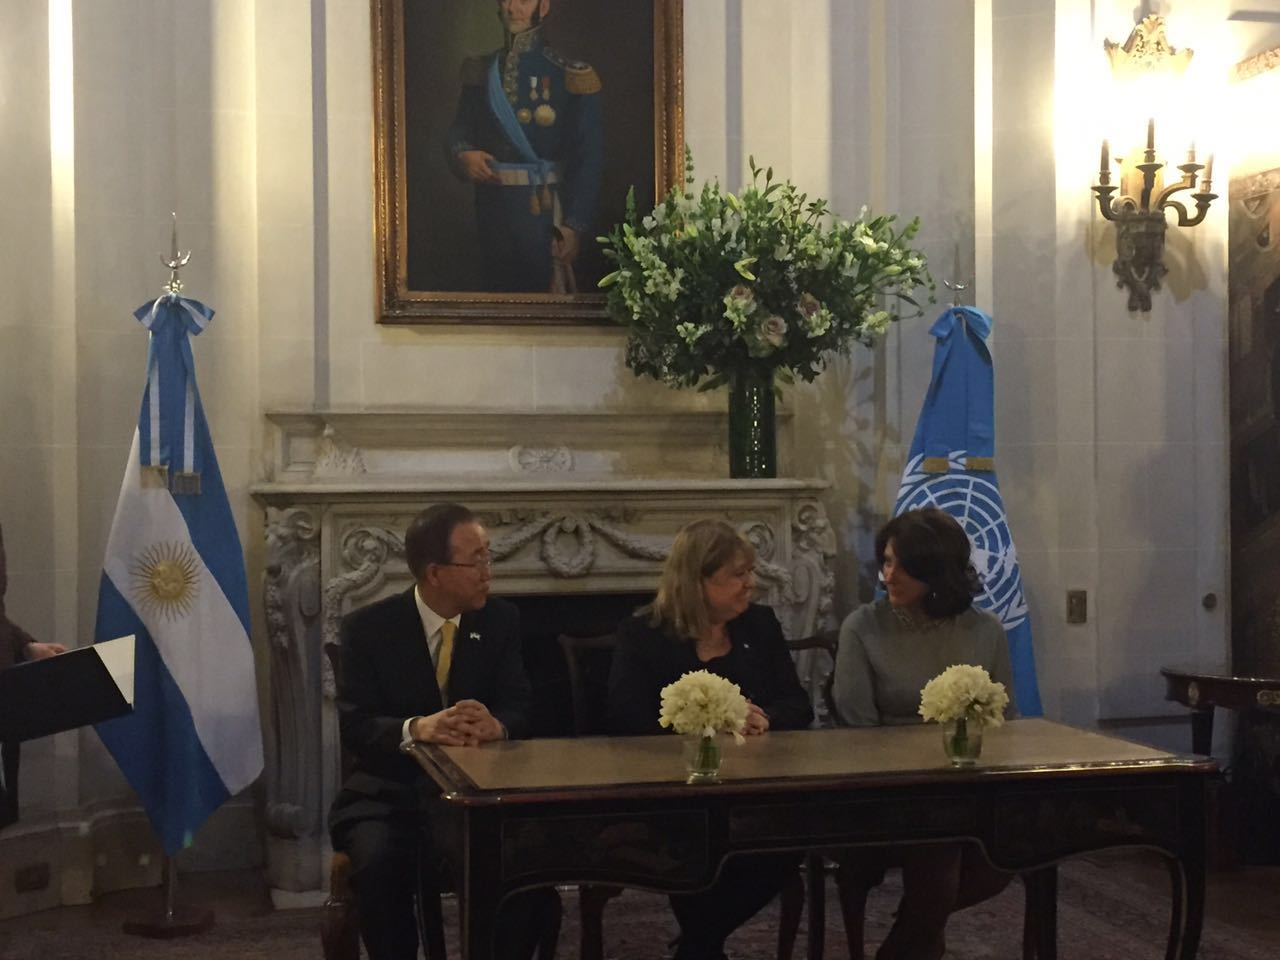 UN Women Signs Letter of Intent to establish a Country Office in Argentina within the official visit of UN Secretary-General